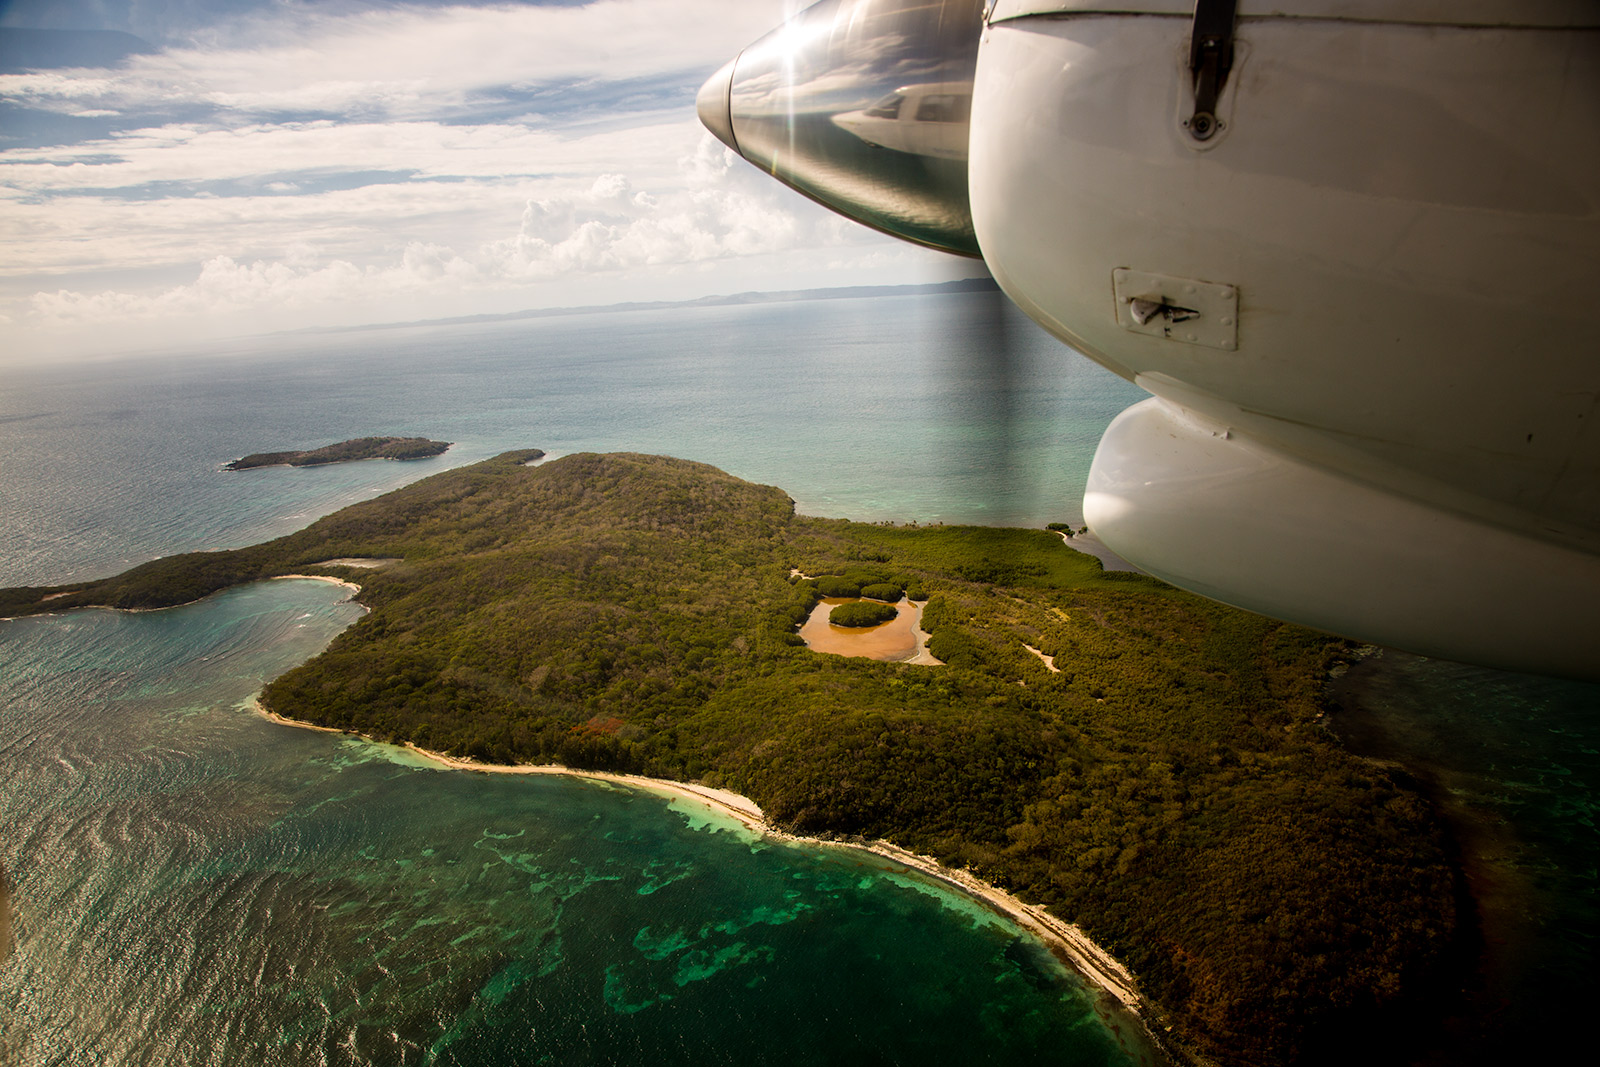 With Air Flamingo towards the island of Culebra.